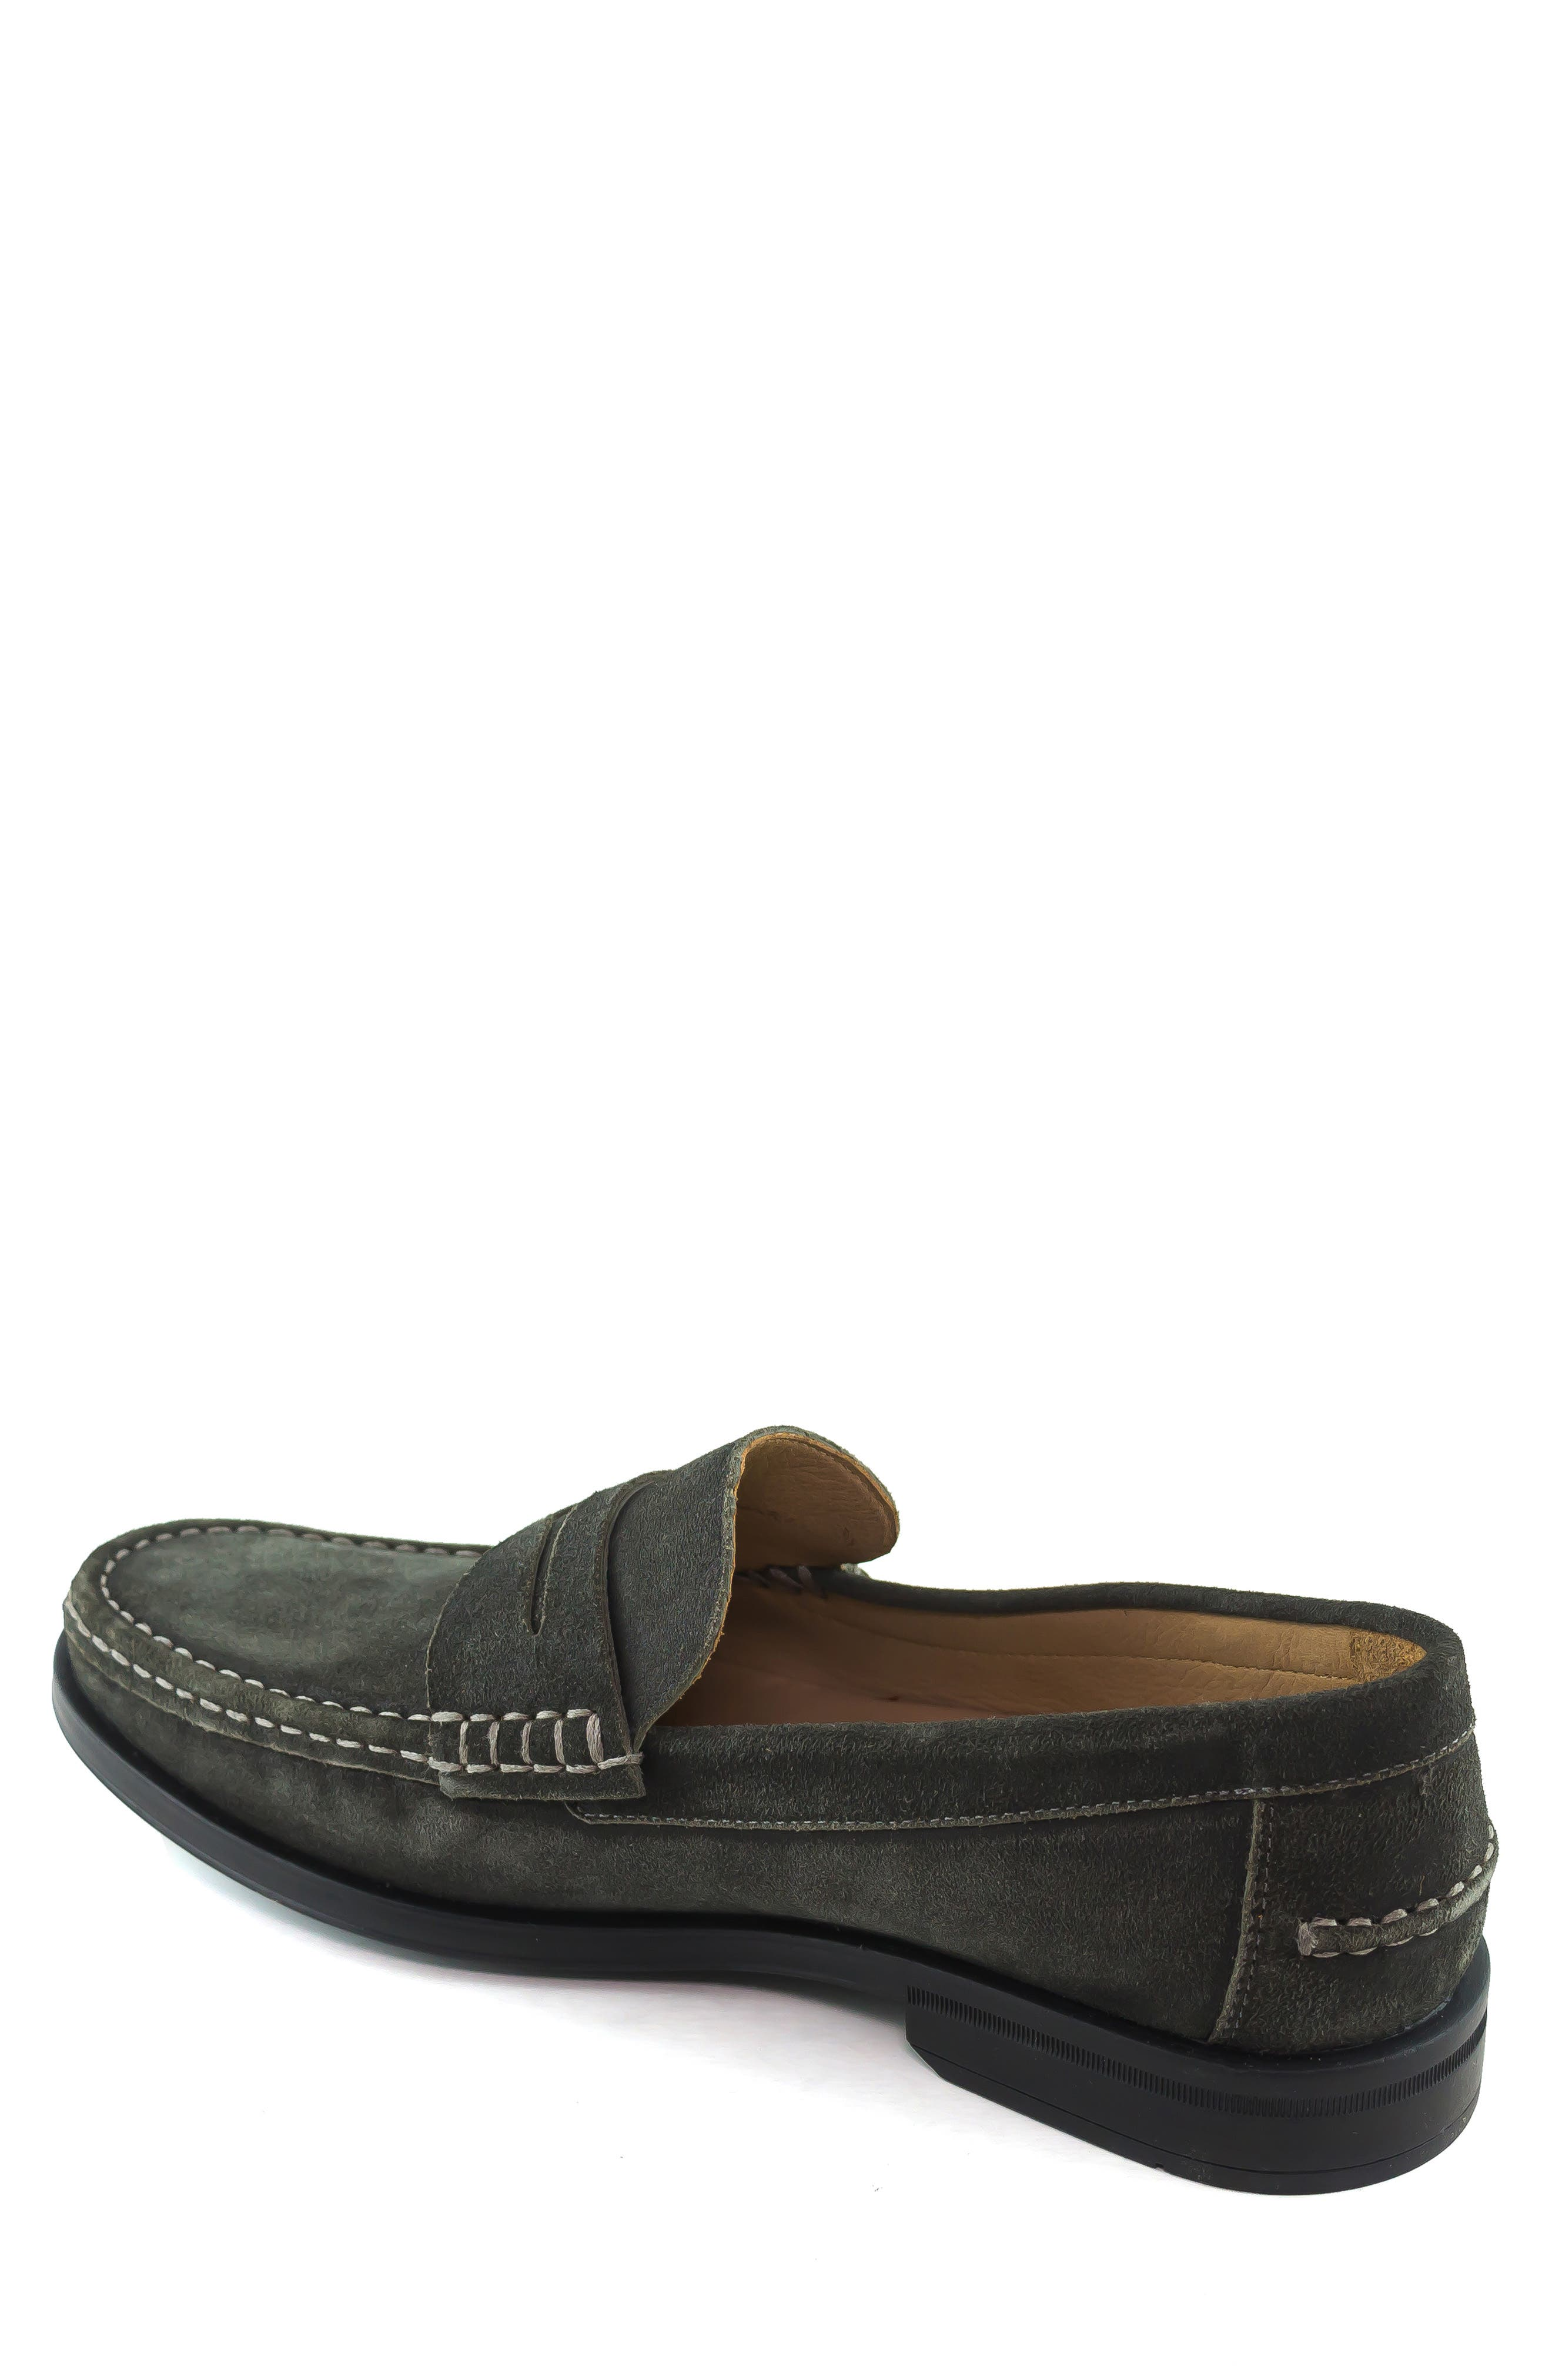 Cortland Penny Loafer,                             Alternate thumbnail 2, color,                             GRAPHITE LEATHER